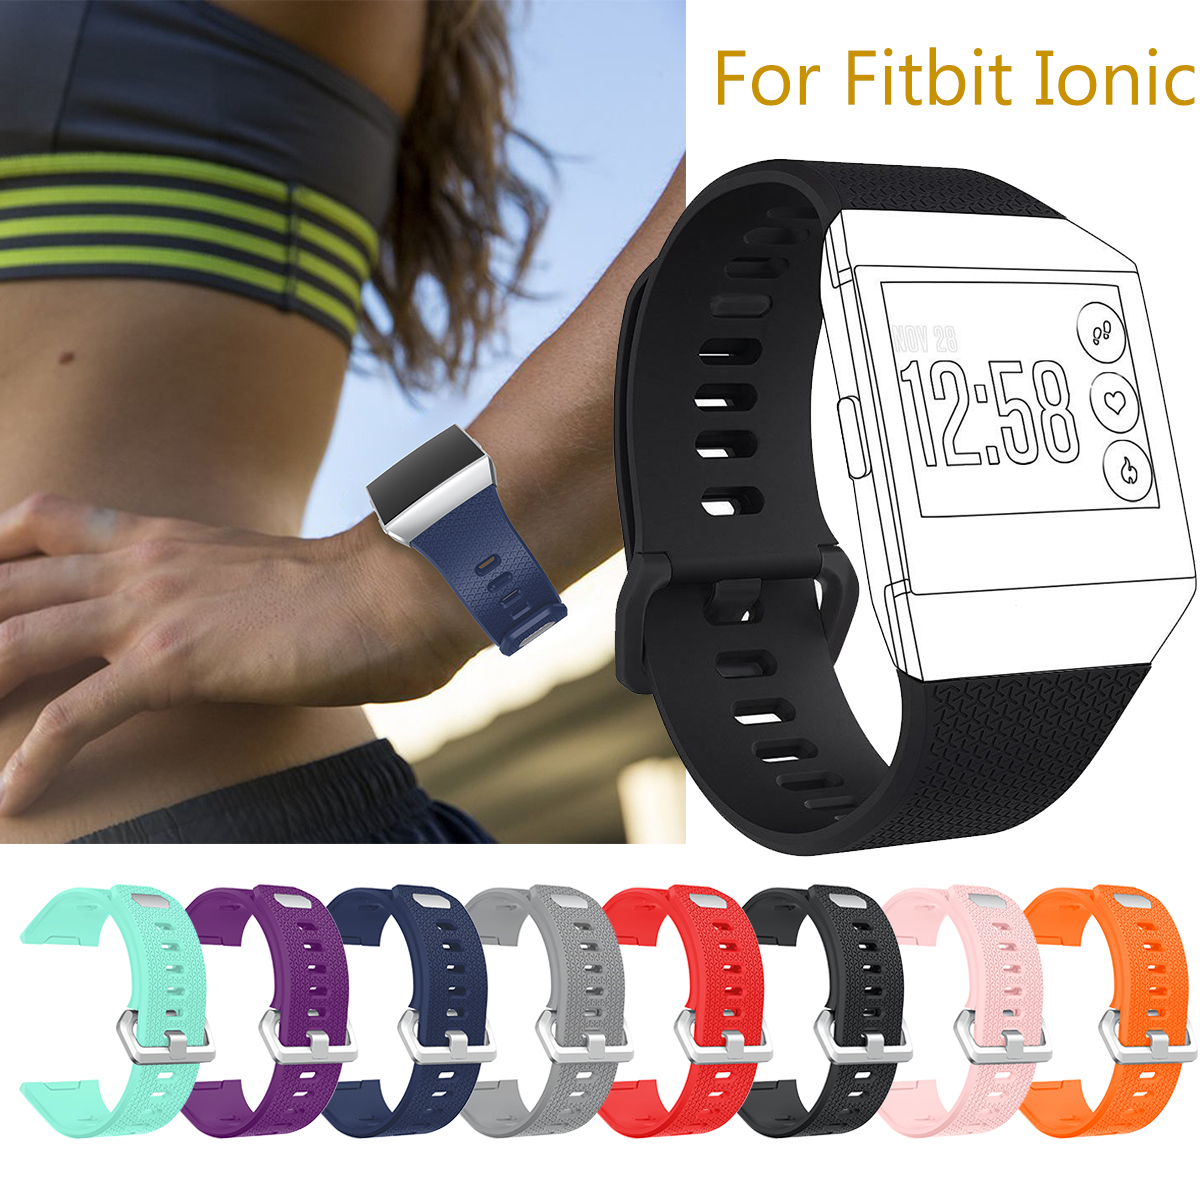 Soft Silicone Wrist Sport Watch Strap Bracelet Band Replacement For Fitbit Ionic